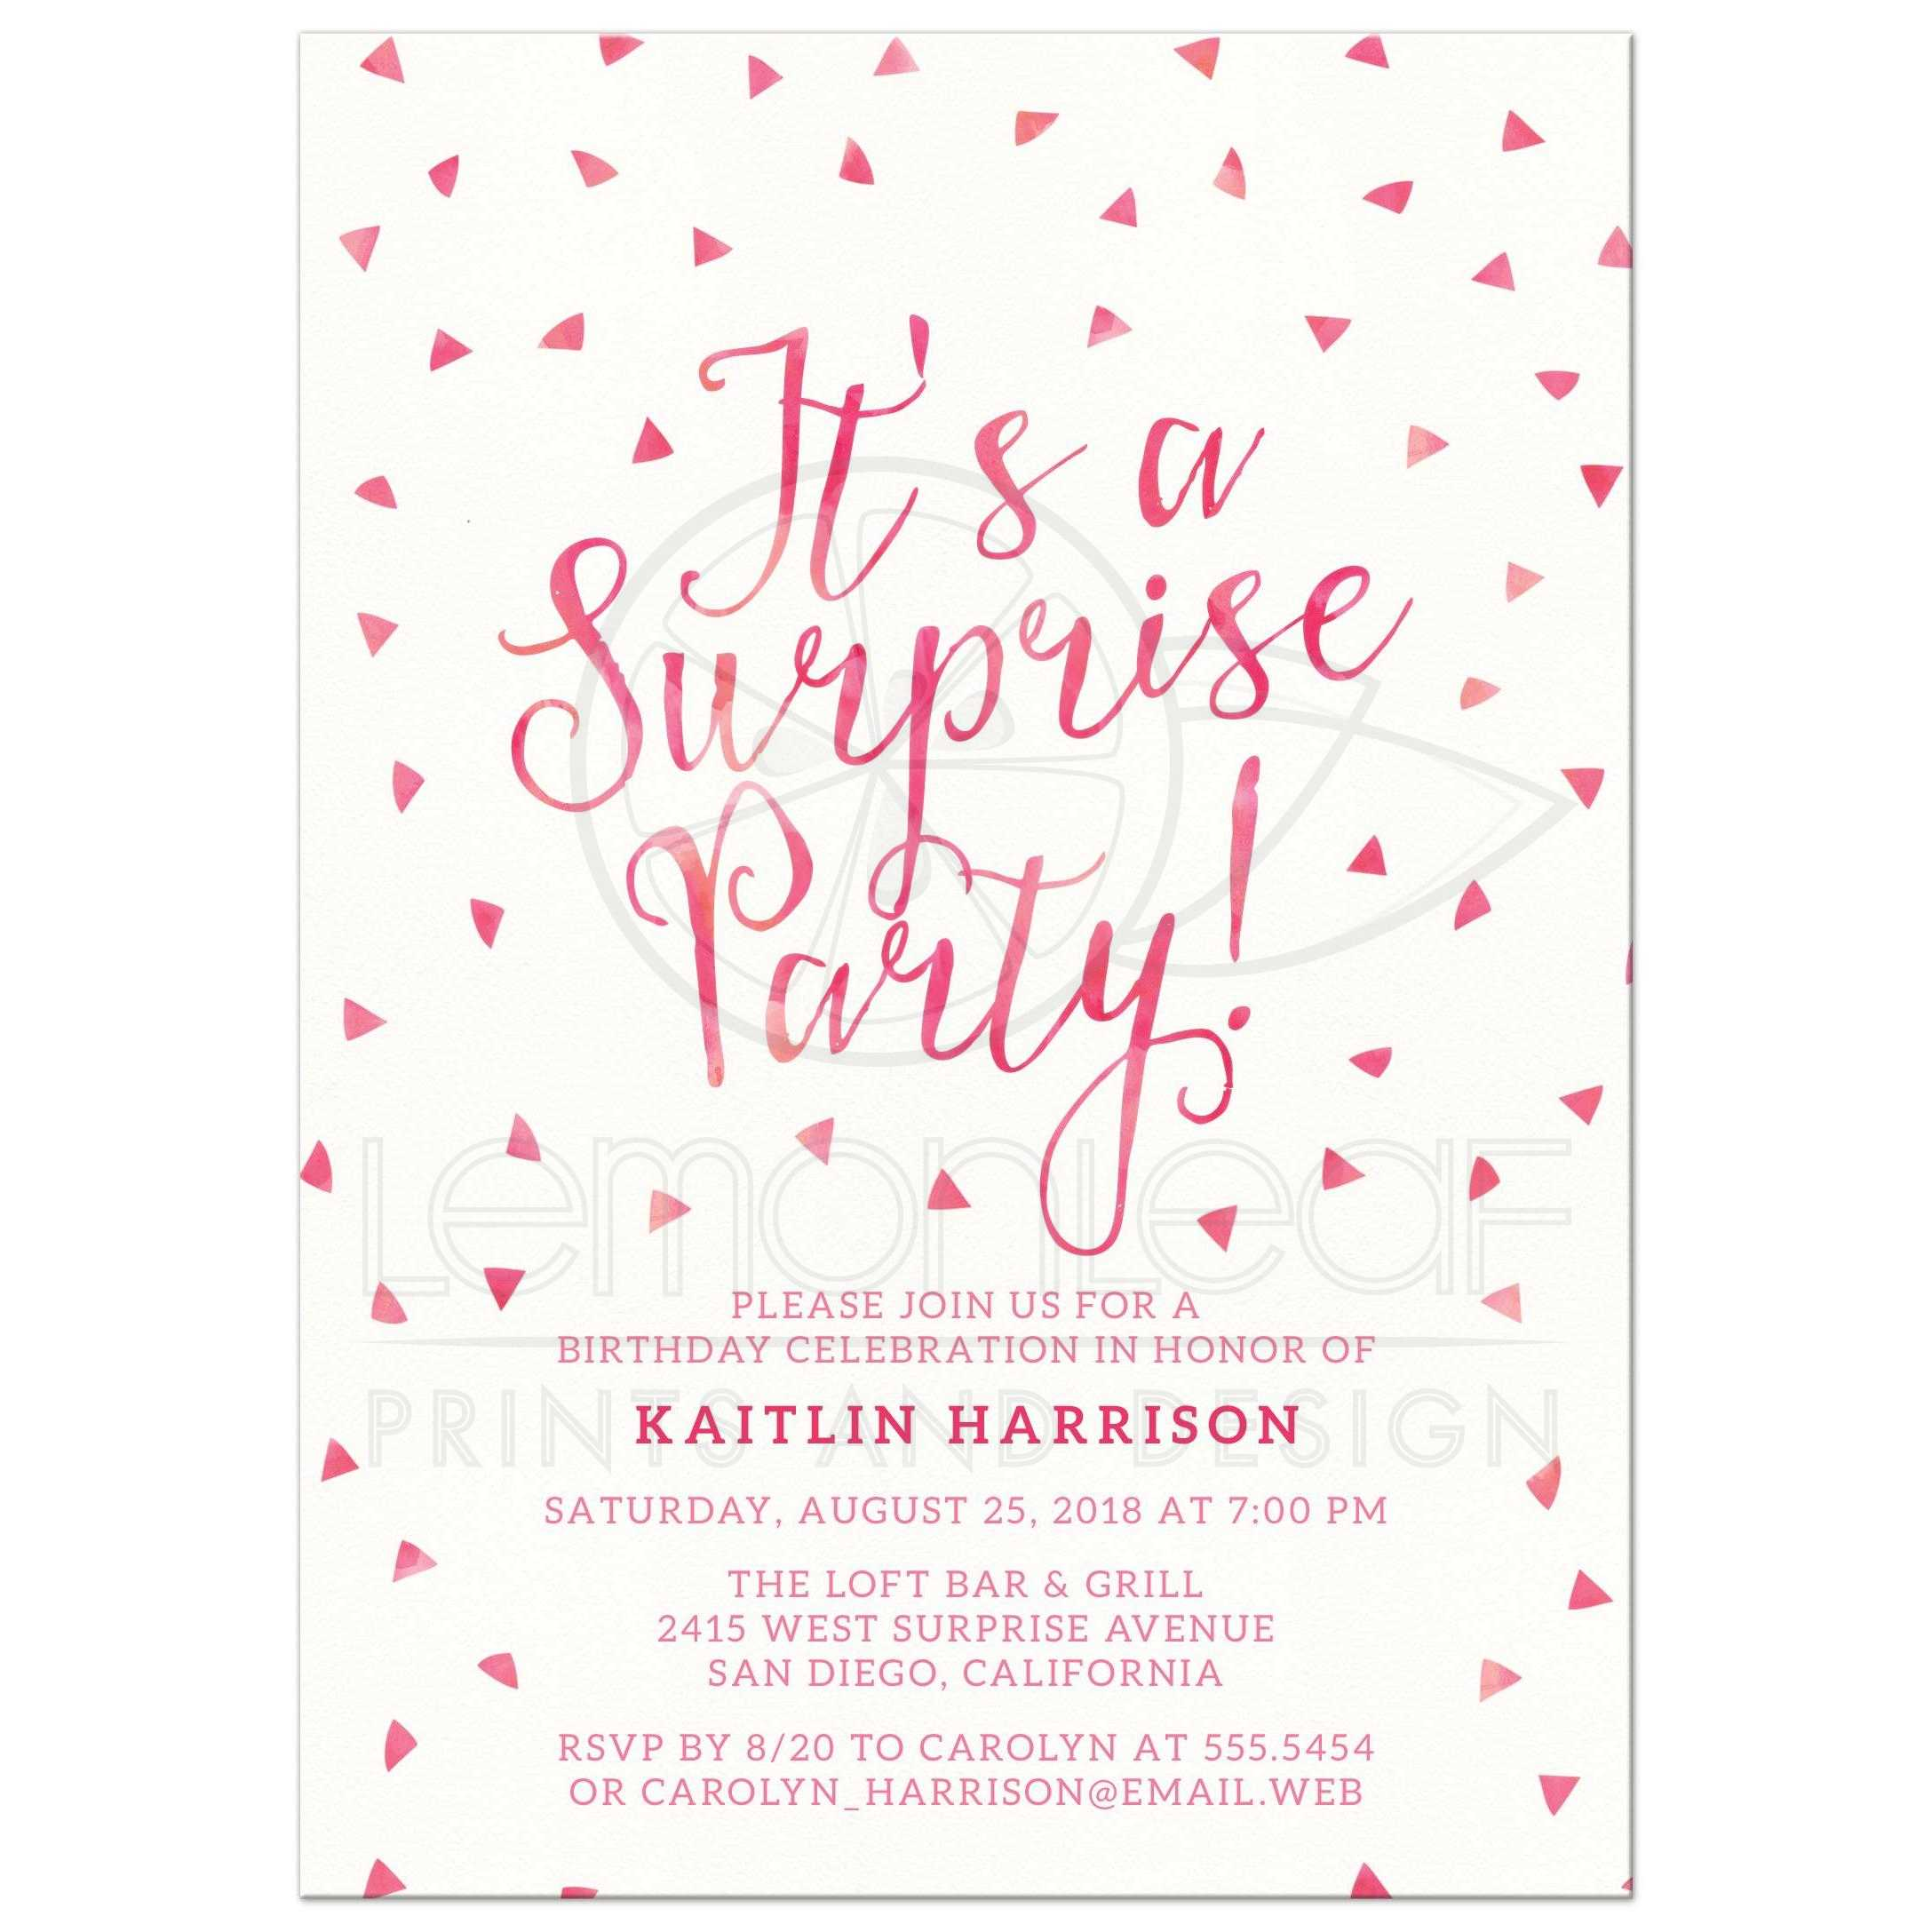 Surprise Birthday Party Invitations Pink Watercolor Triangle – Surprise Birthday Party Invites